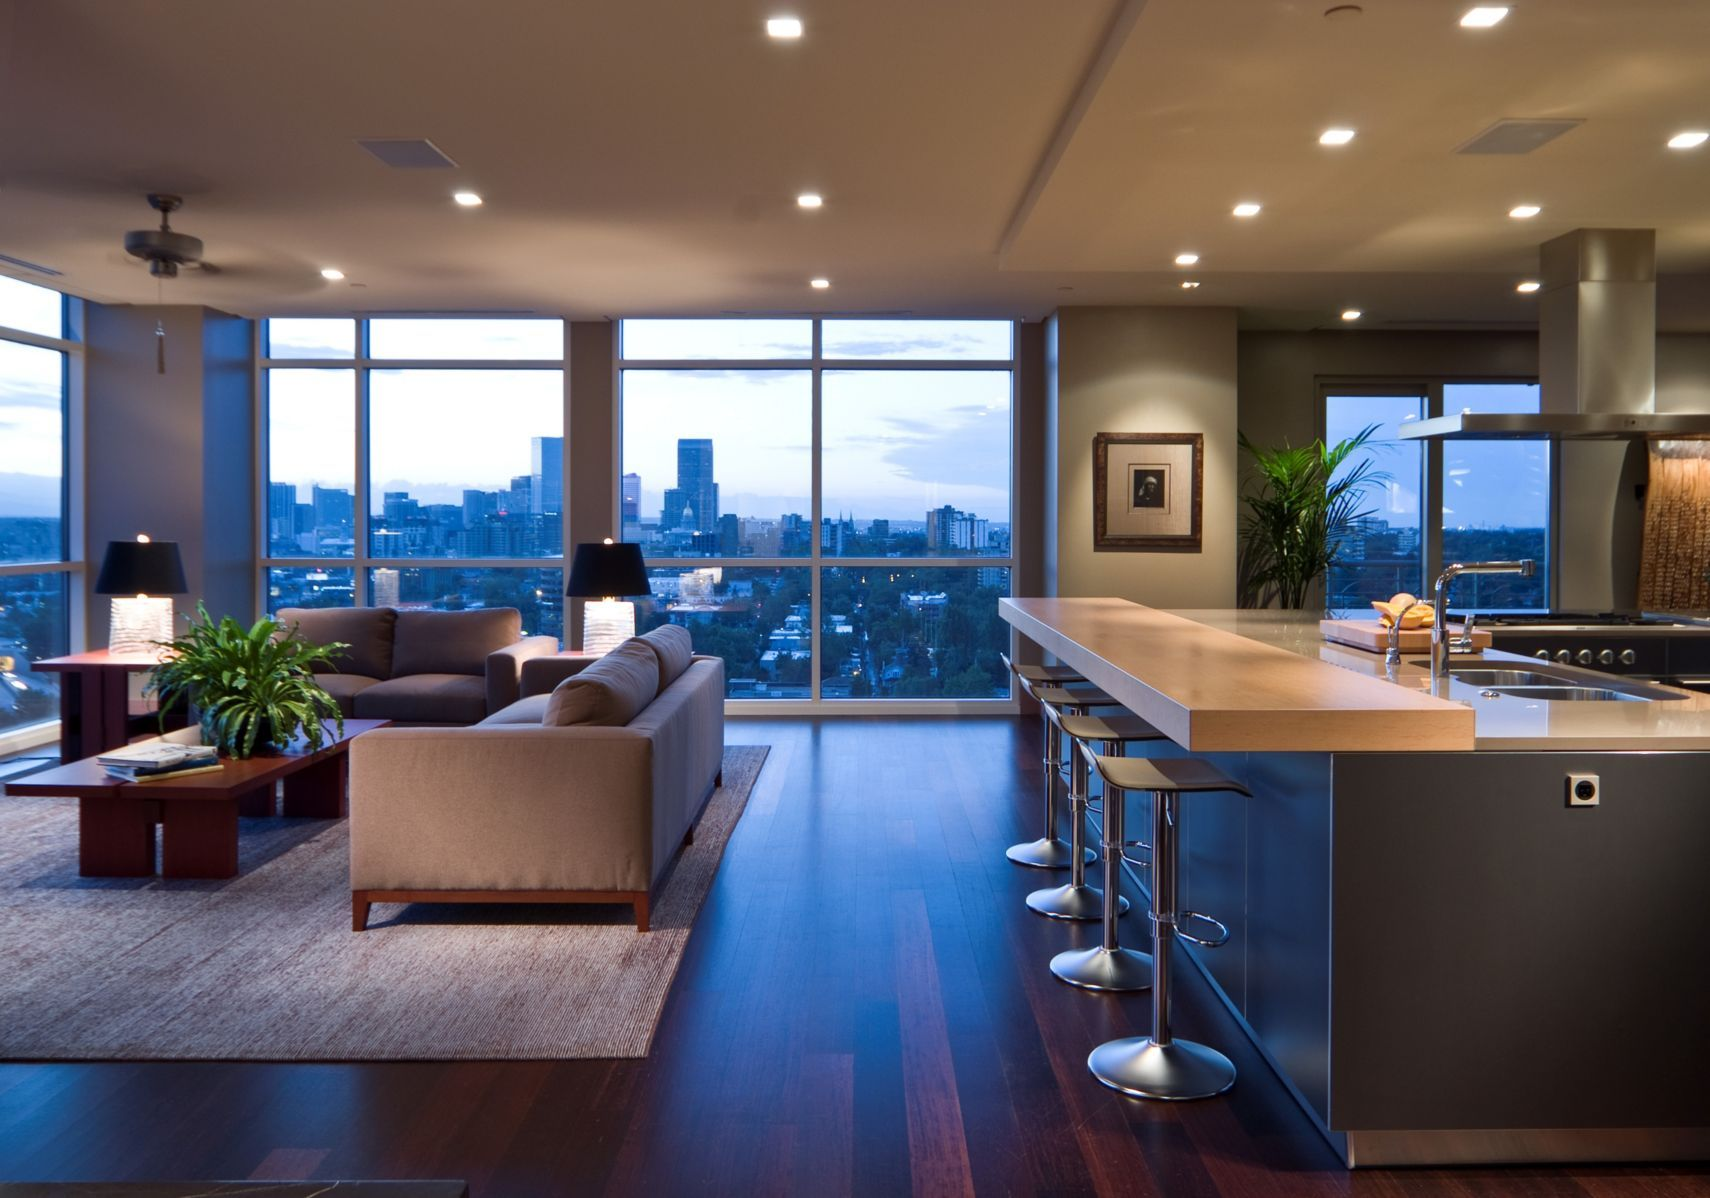 How supermodels live: luxury apartments with stunning views of the metropolis 54